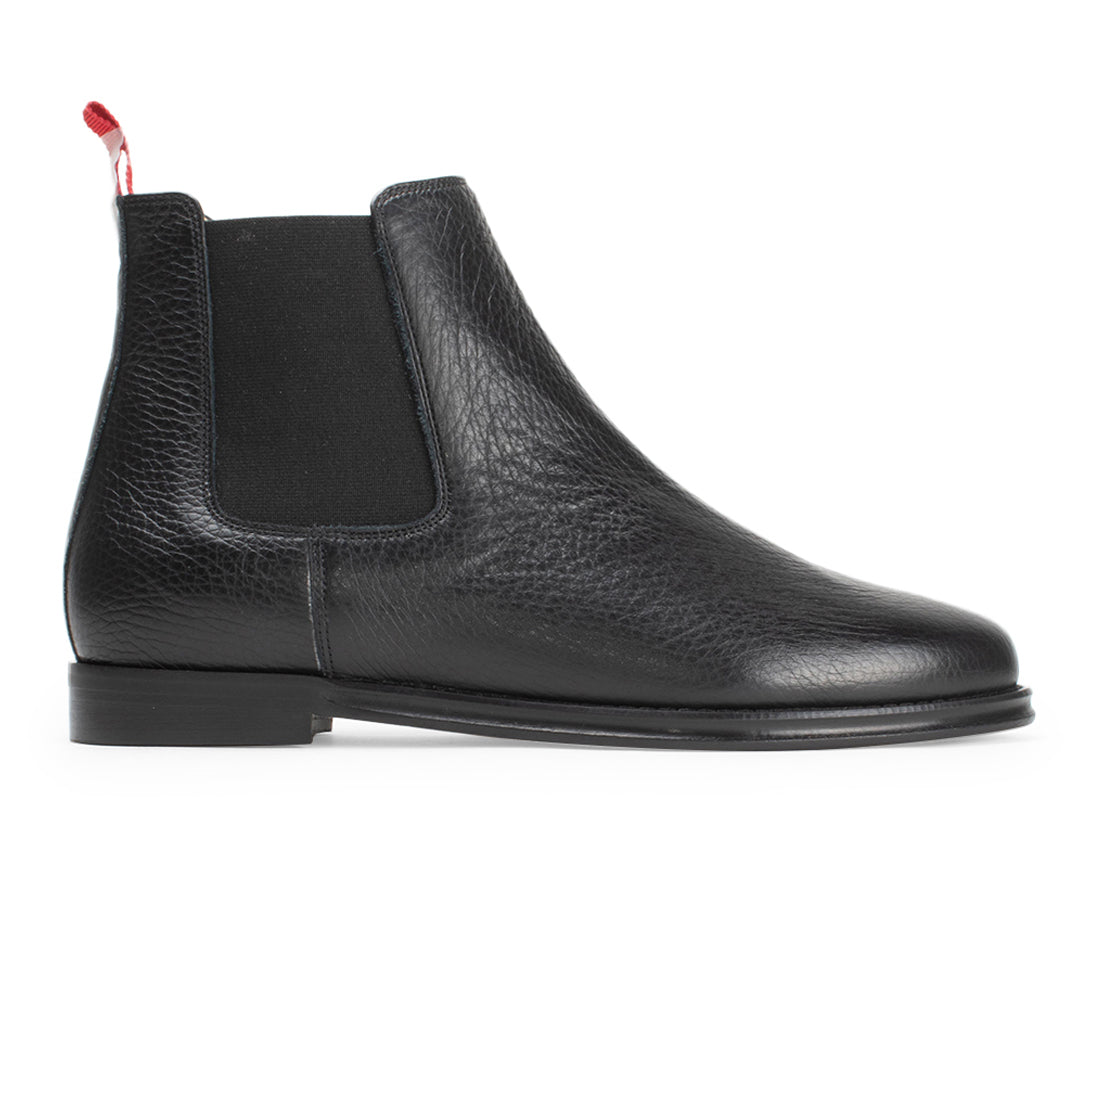 Women's Black Bottalato Chelsea Boot